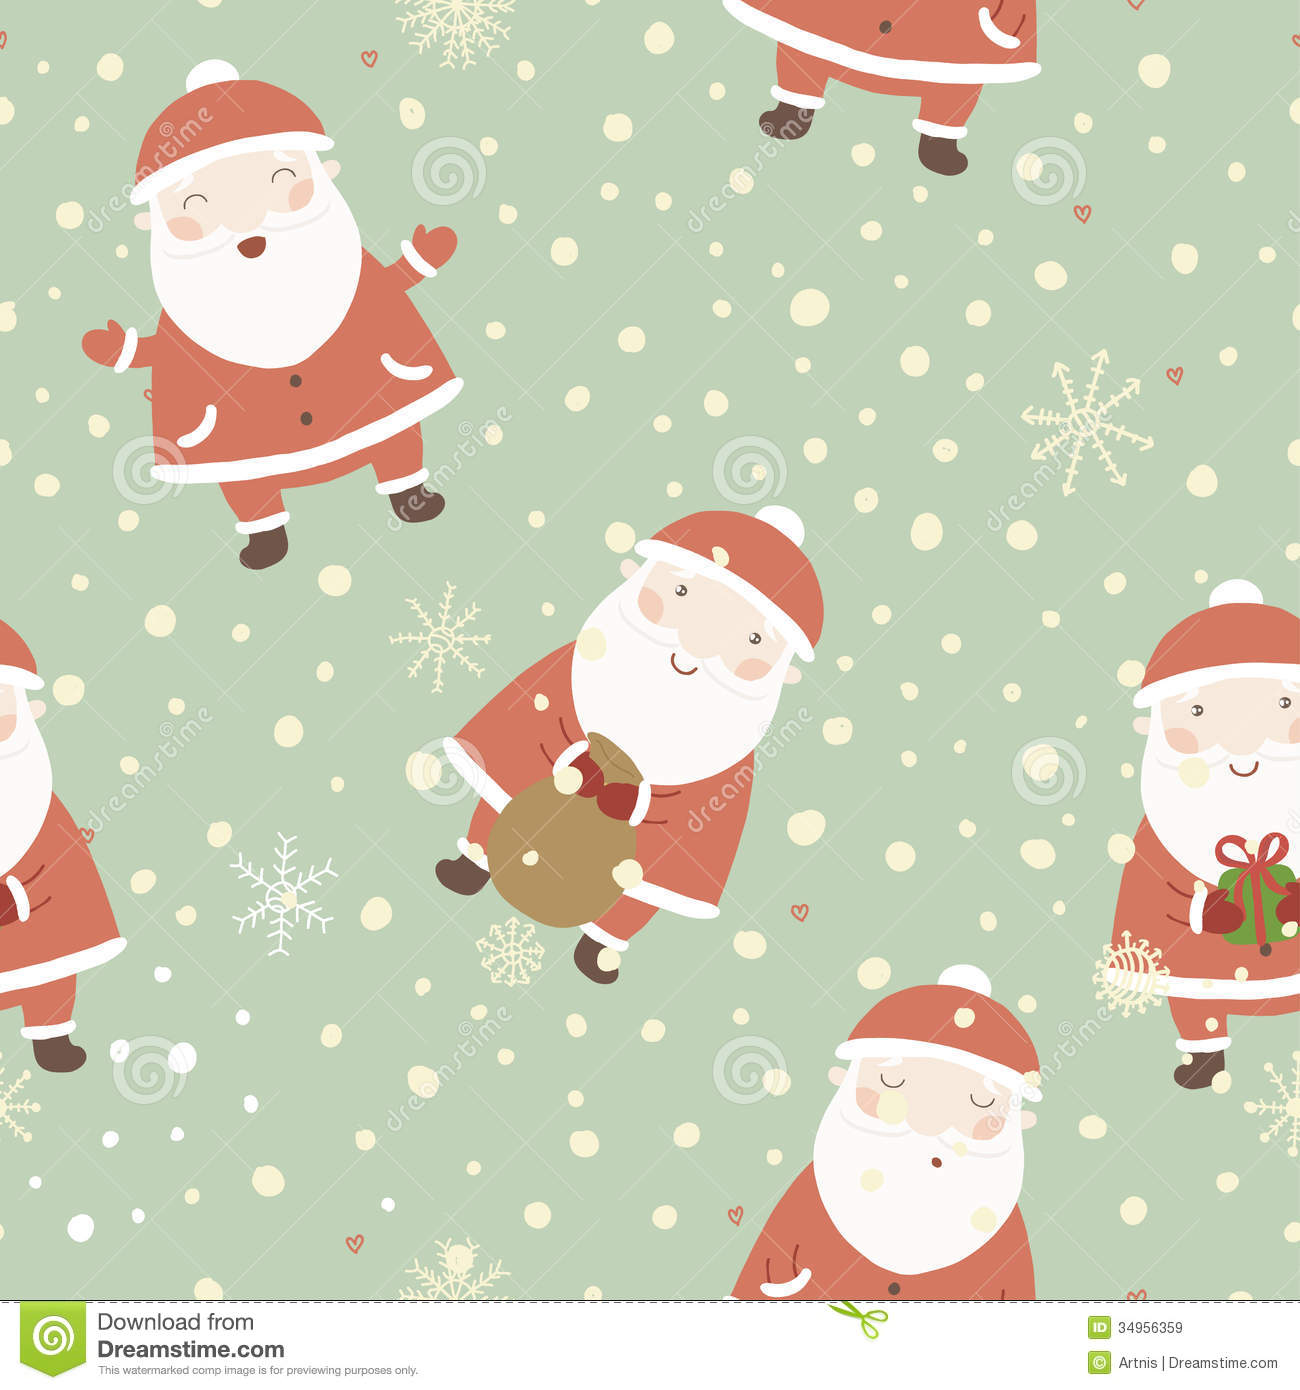 Cute Cartoon Christmas Wallpaper 10560 Hd Wallpapers 1300x1390